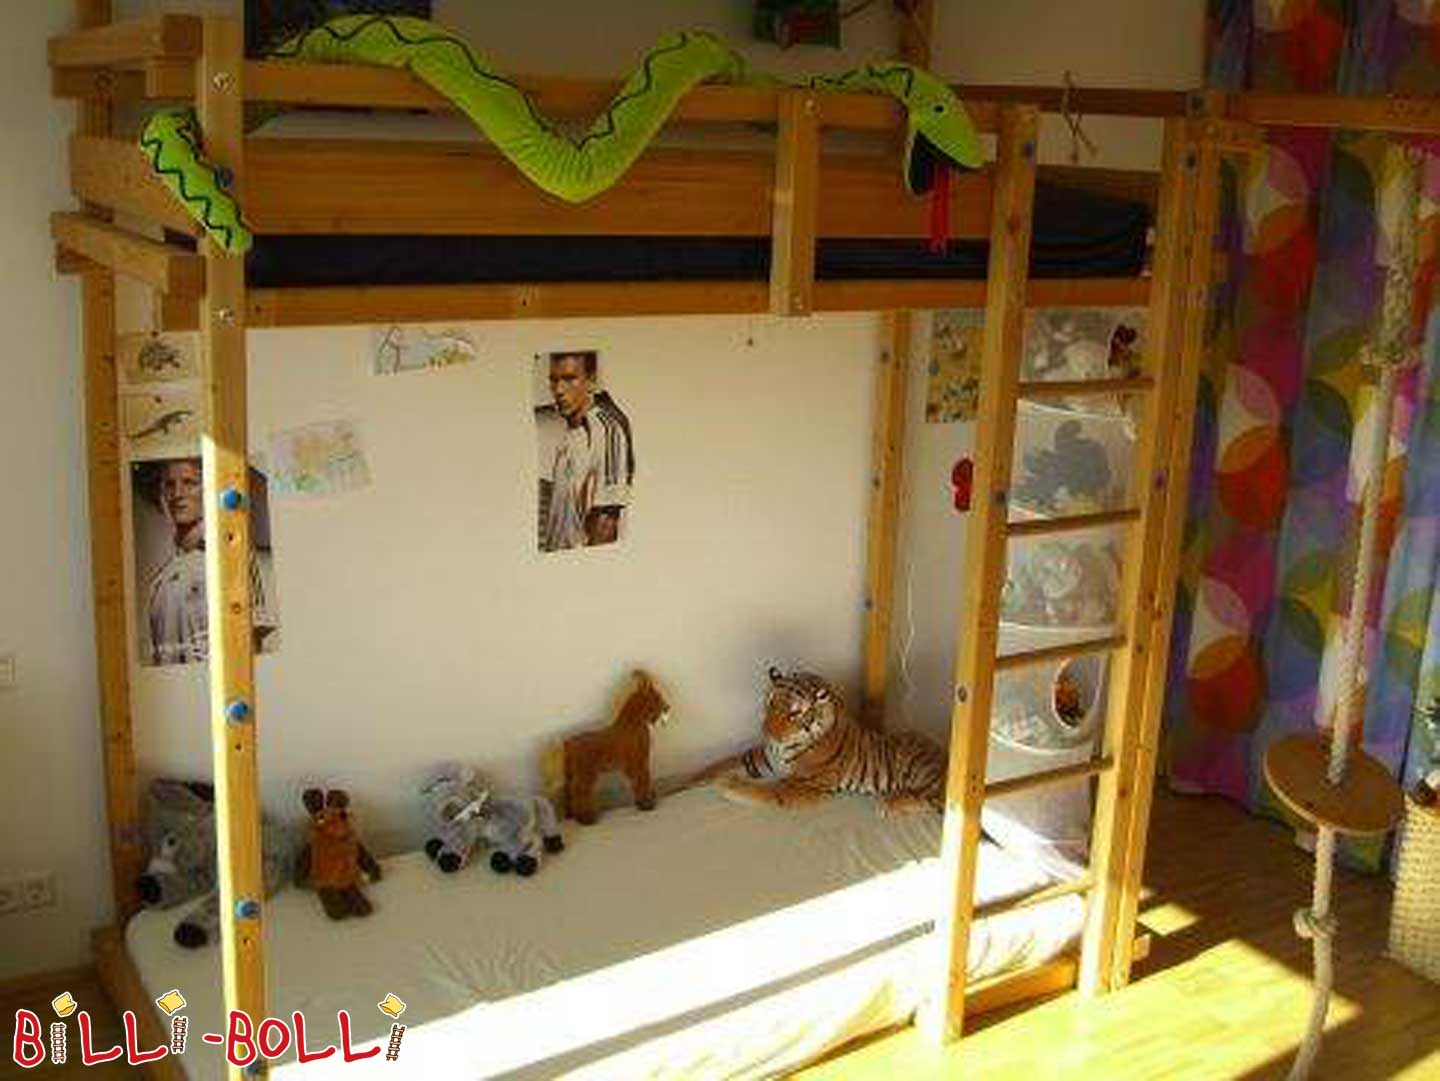 2 Billi Bolli youth high beds type. No. 220 (second hand loft bed)